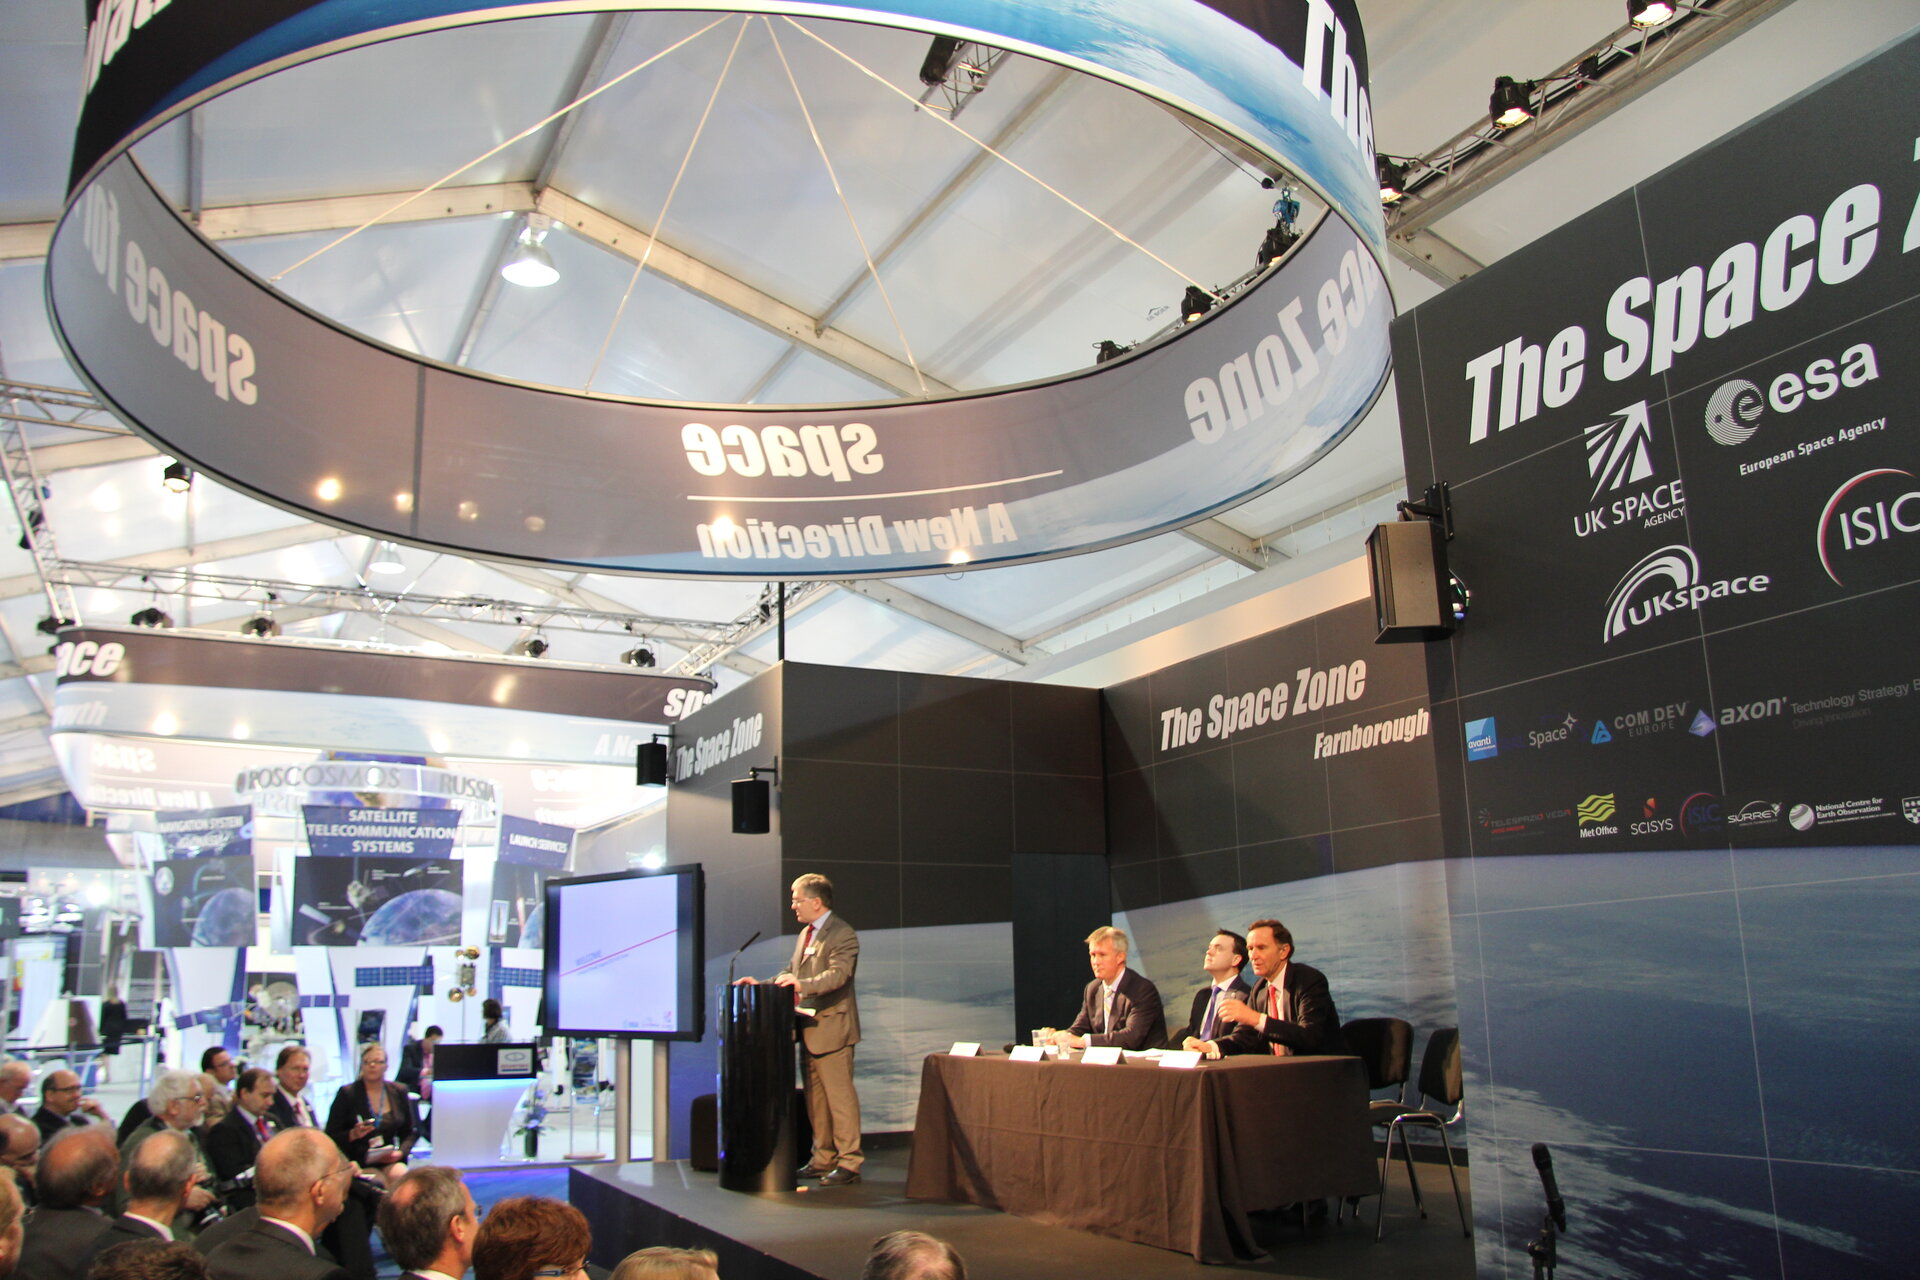 Industry Space Day Conference, Farnborough airshow, 12 July 2012